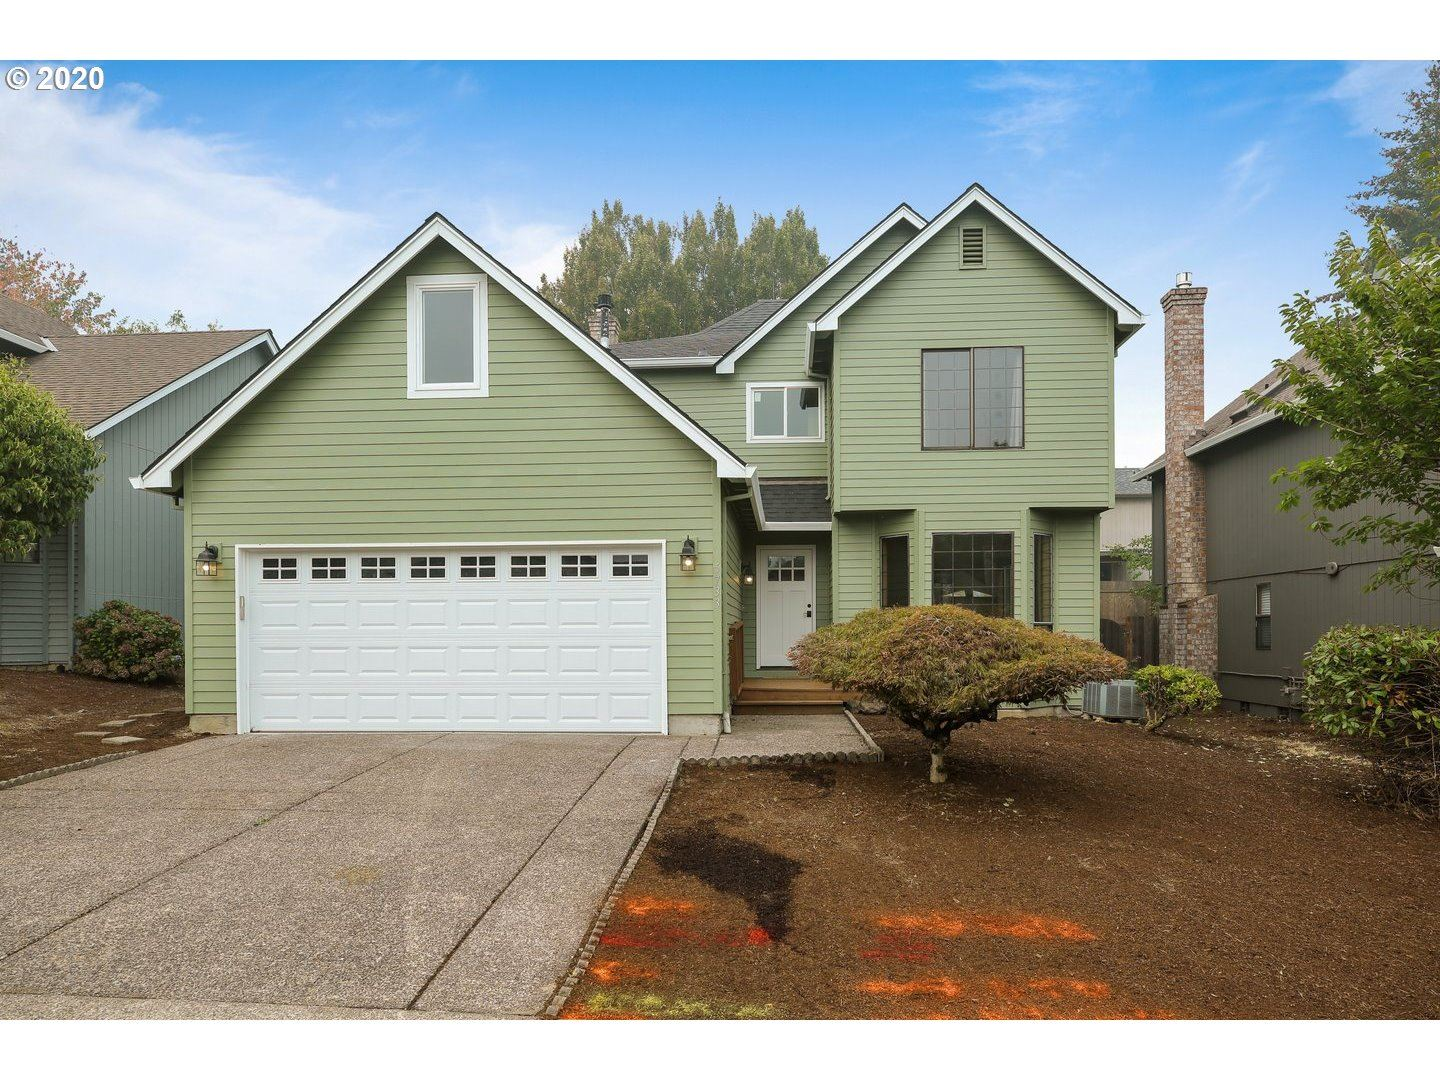 5733 NW 178TH AVE, Portland, OR 97229 - MLS#: 20661936